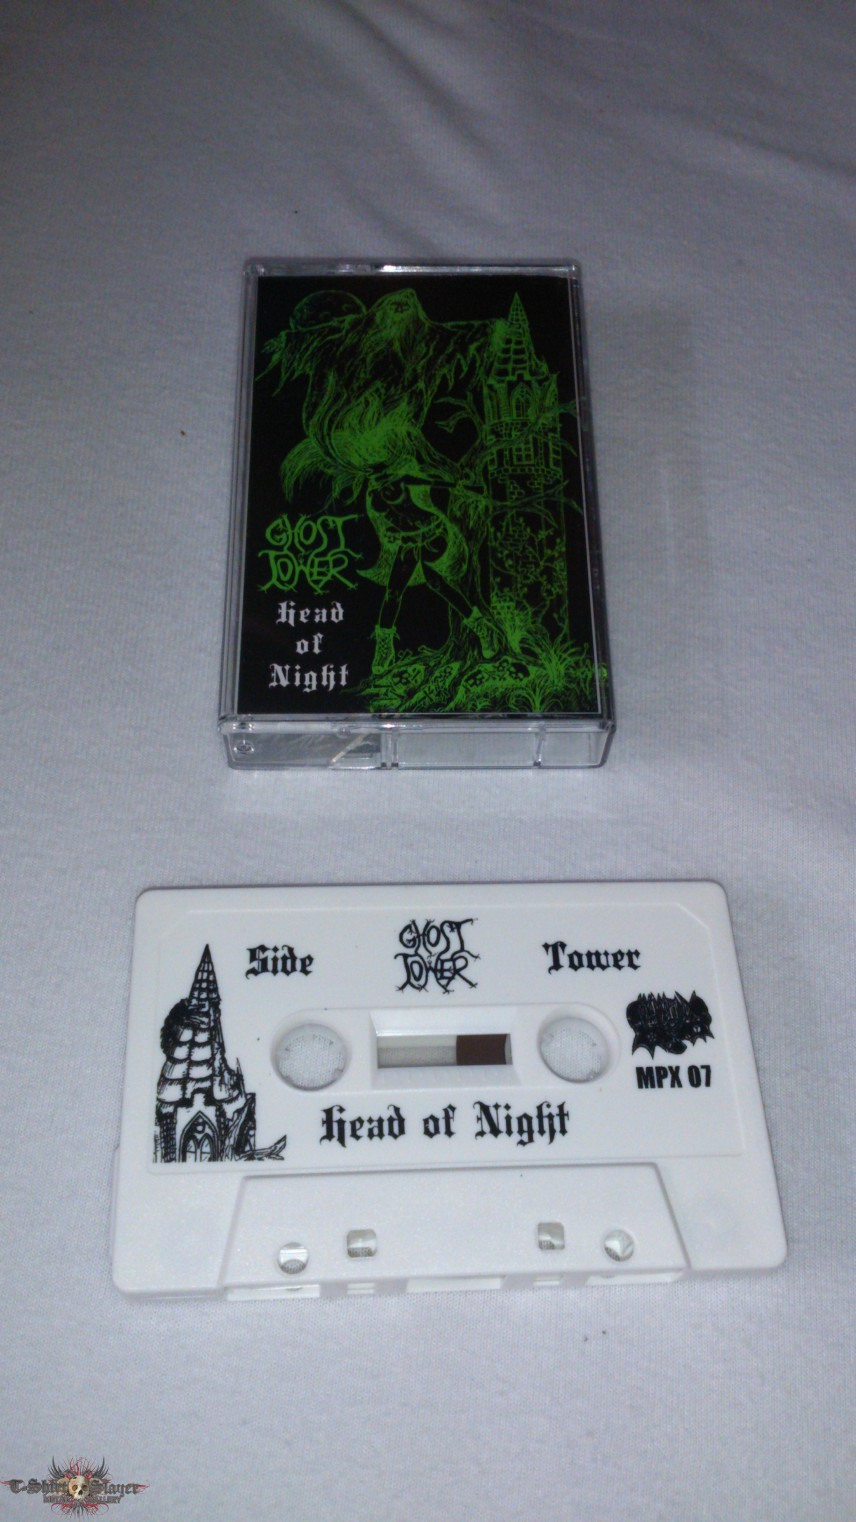 Ghost Tower - Head of Night